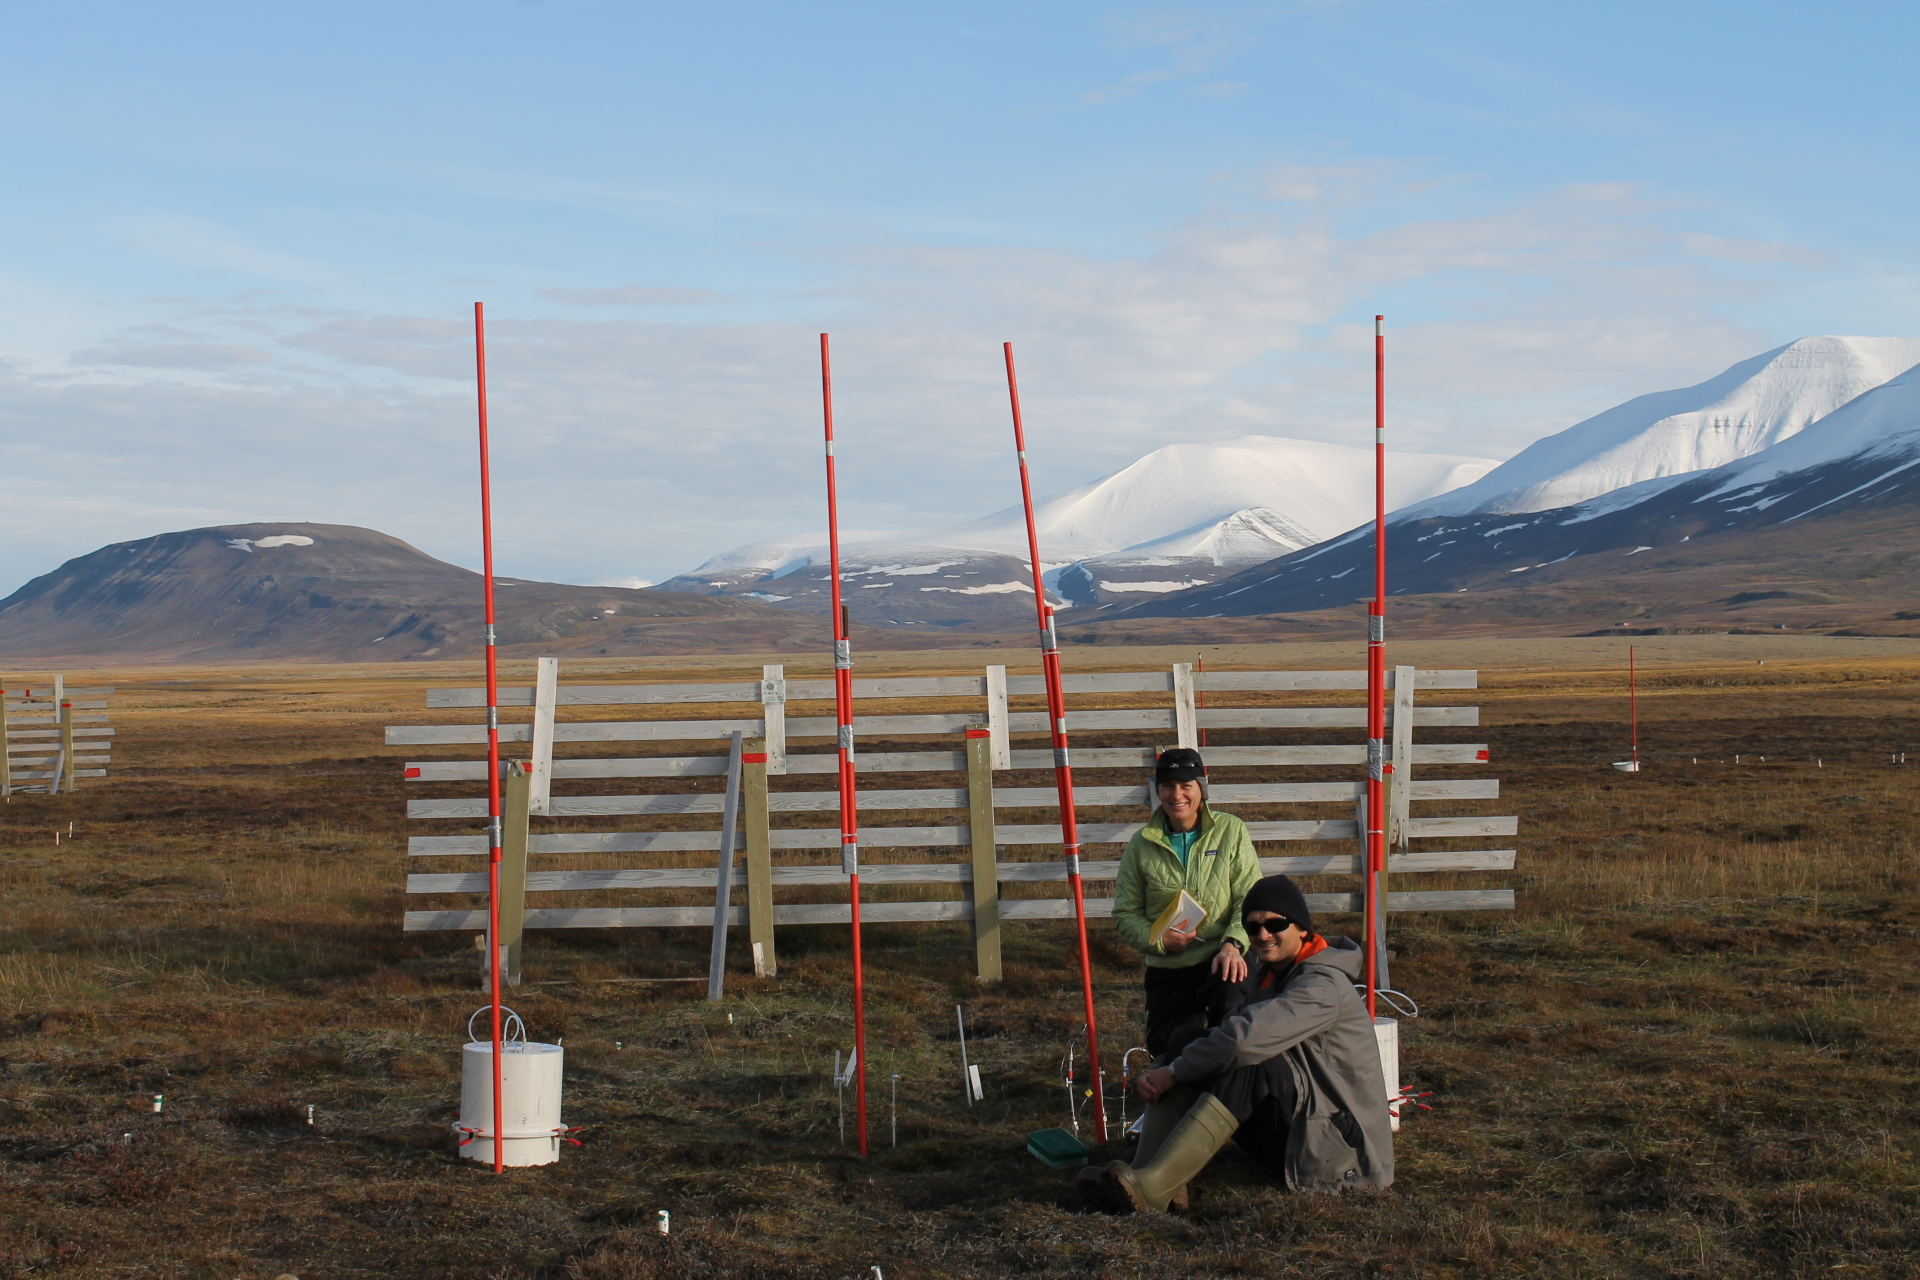 The snowfence experiment